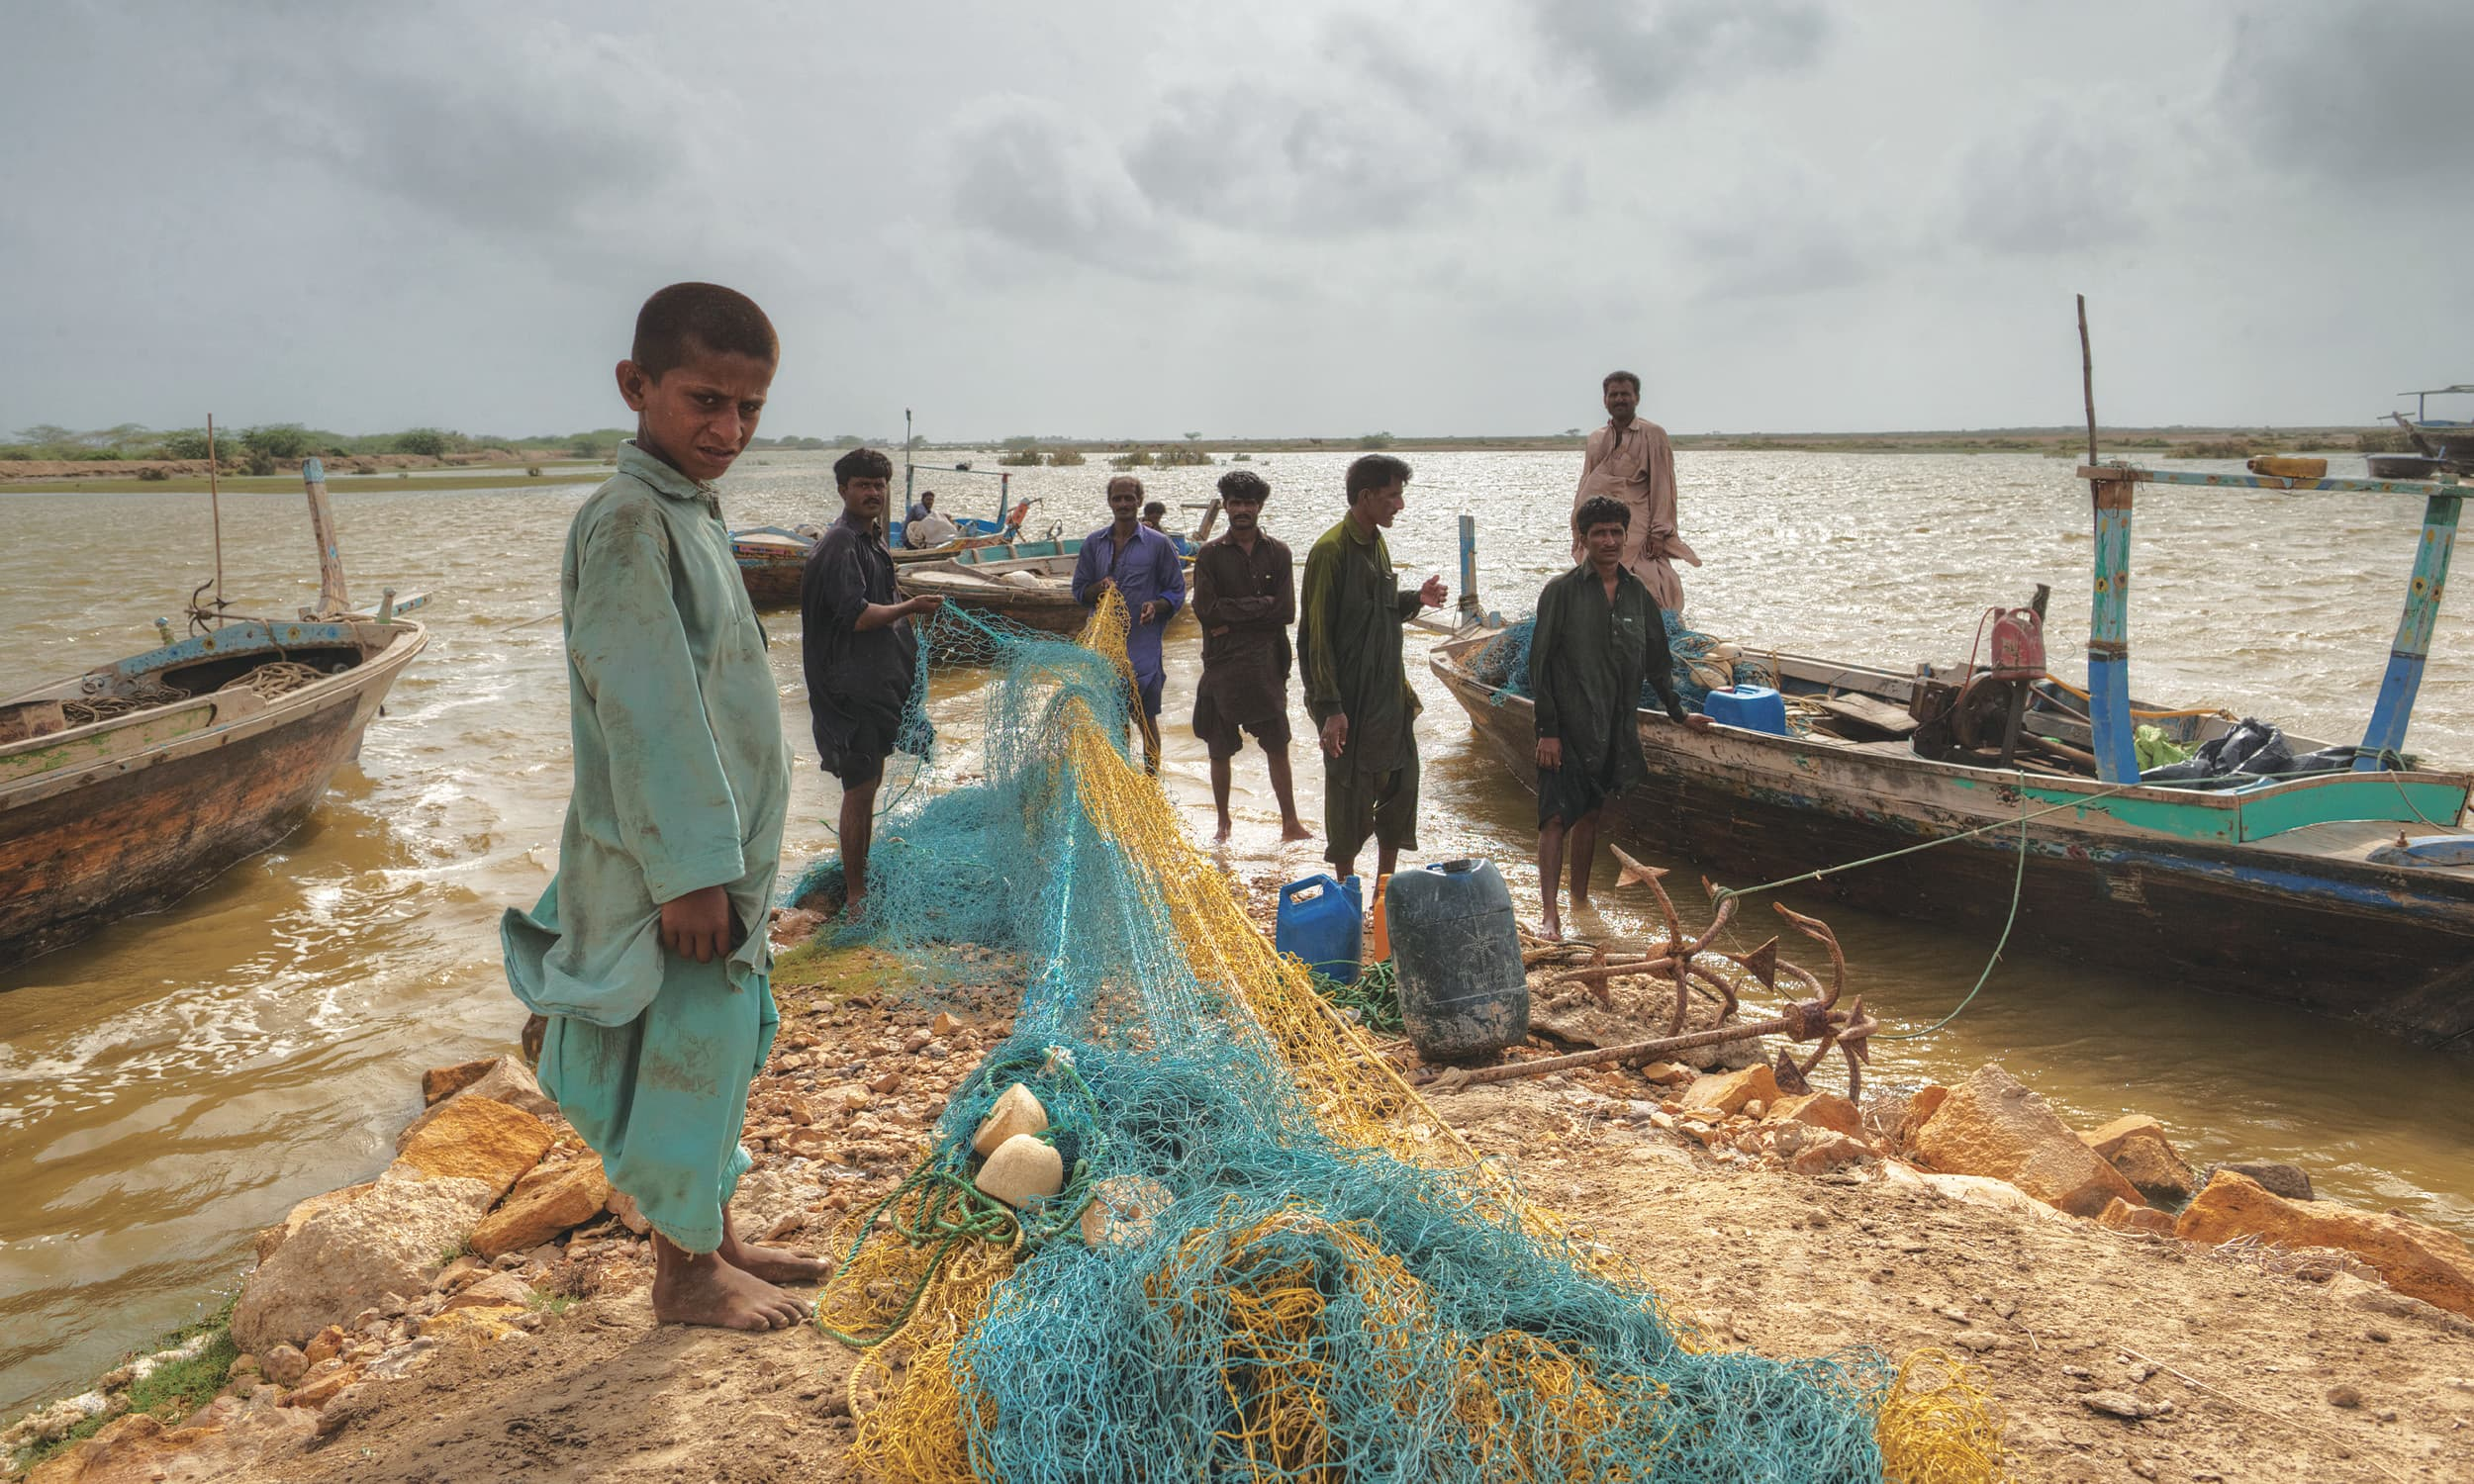 A makeshift fishermen's outpost along the coast near Keti Bandar | Kohi Marri